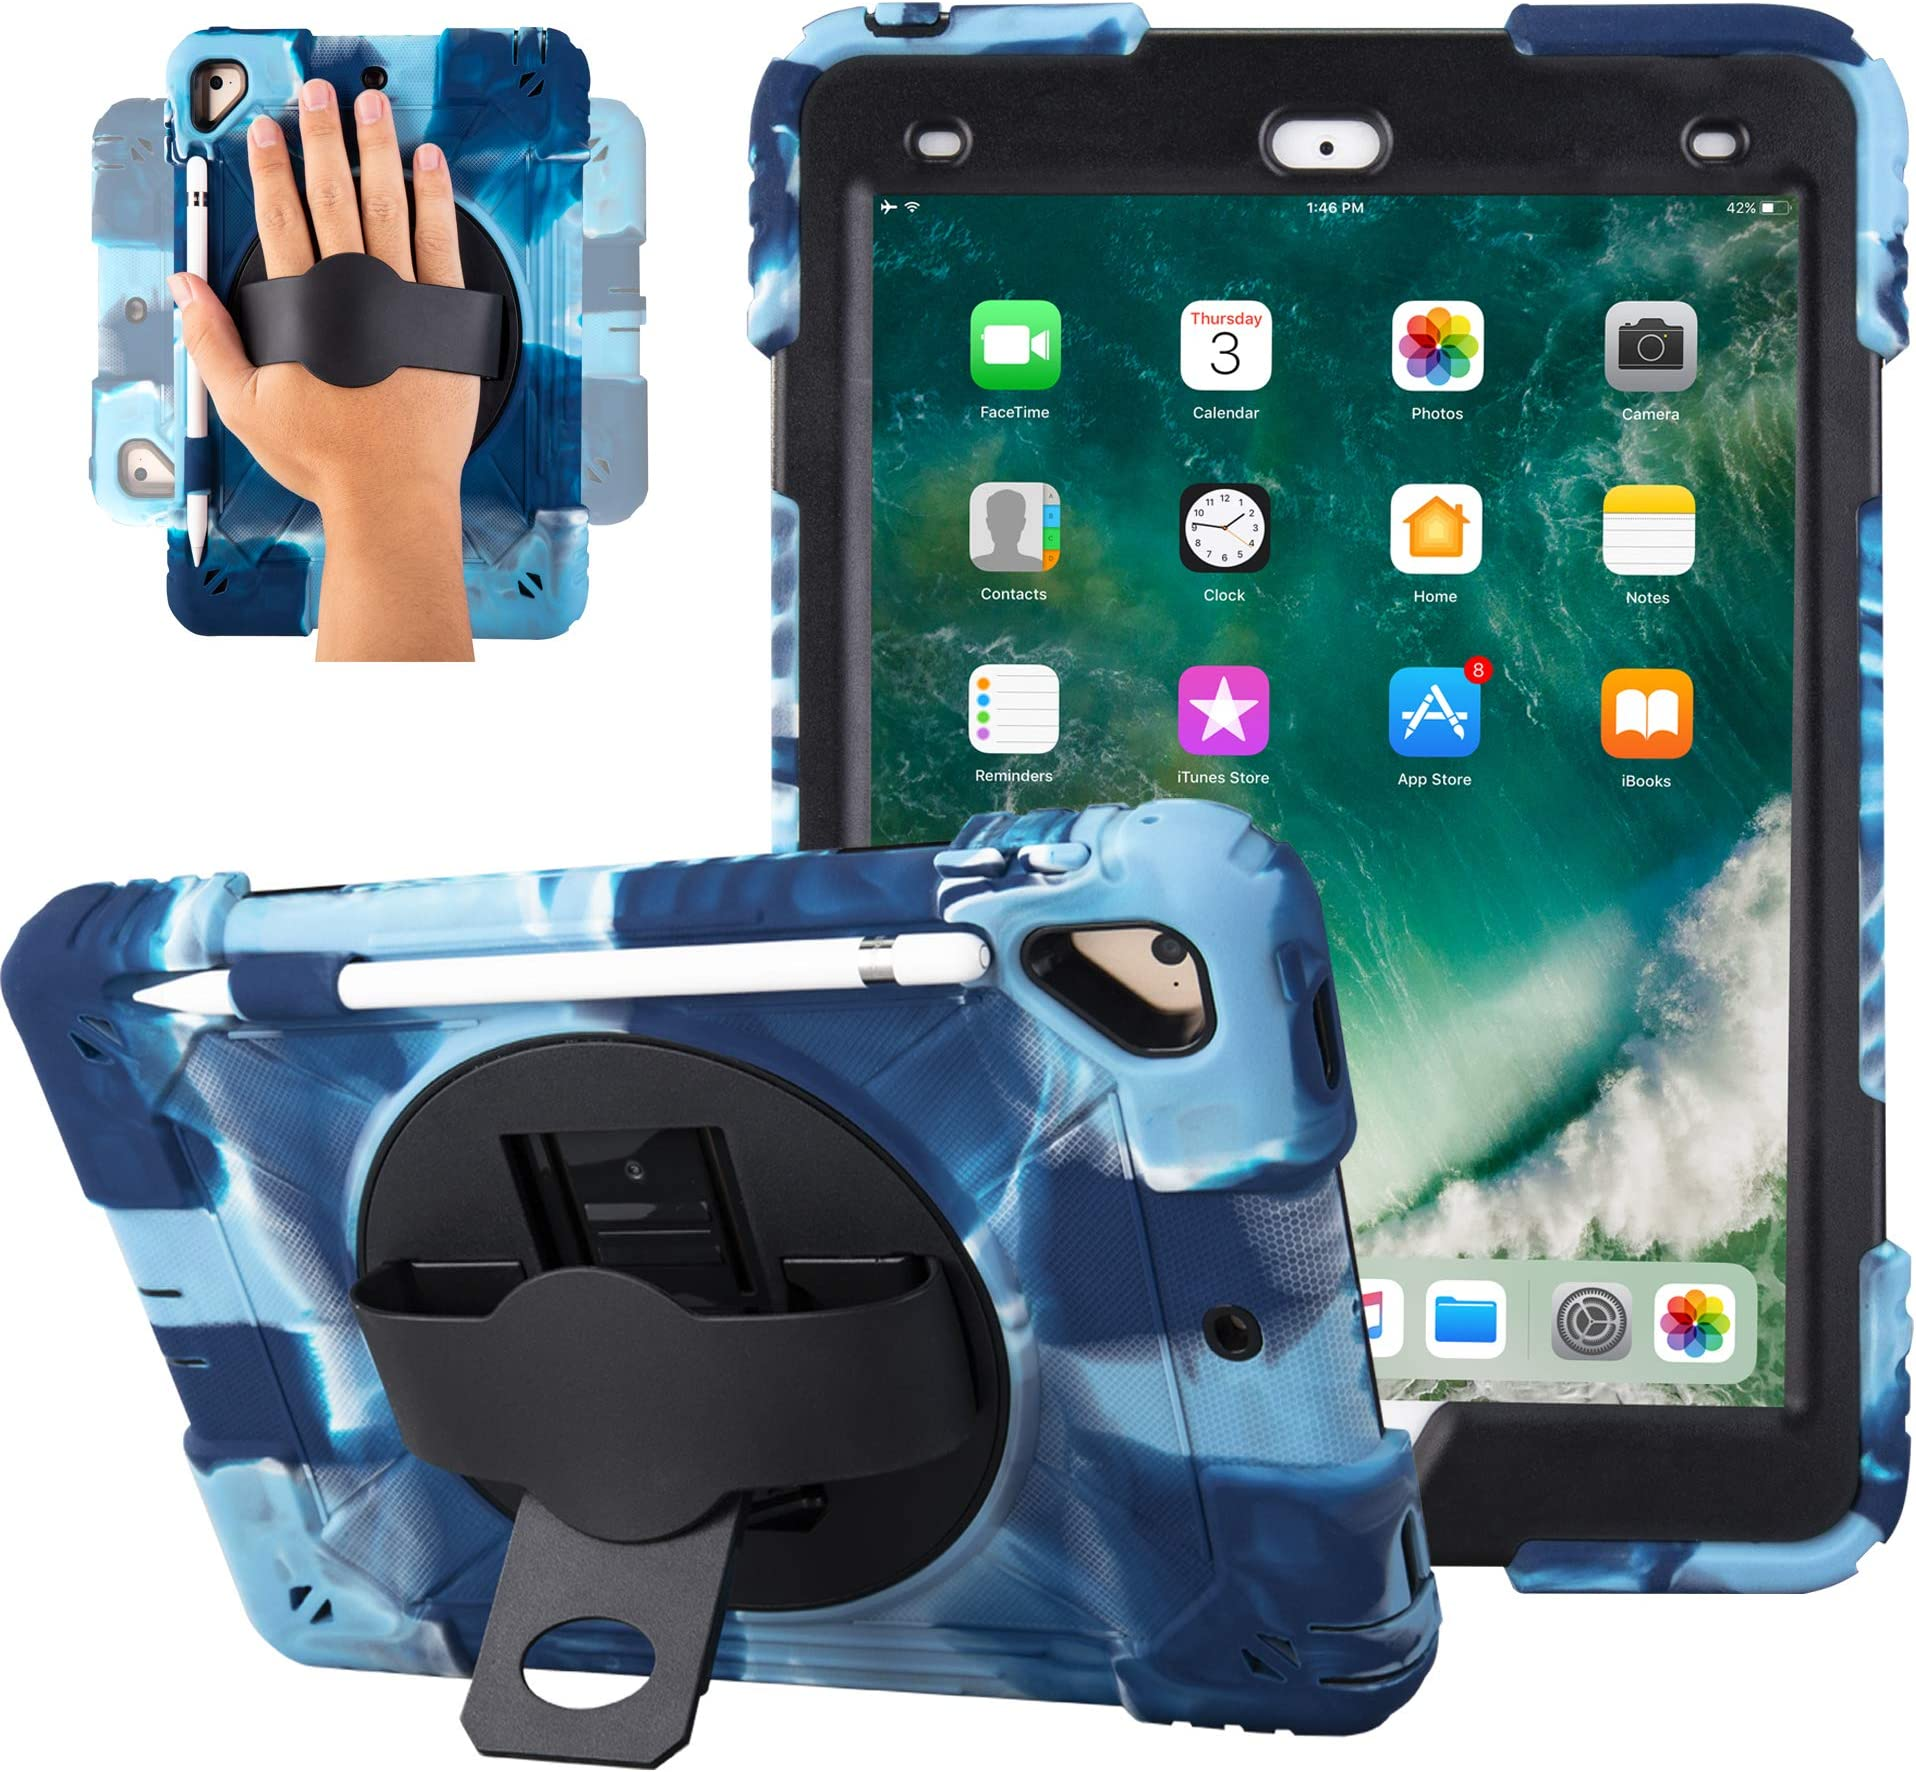 iPad 2017/2018 iPad 9.7 inch Case Shockproof Impact Resistant Protective Case Cover Full Body Rugged for Kids with Kickstand for ipad 5 th/ipad 6 th Generation(Navy/Black)